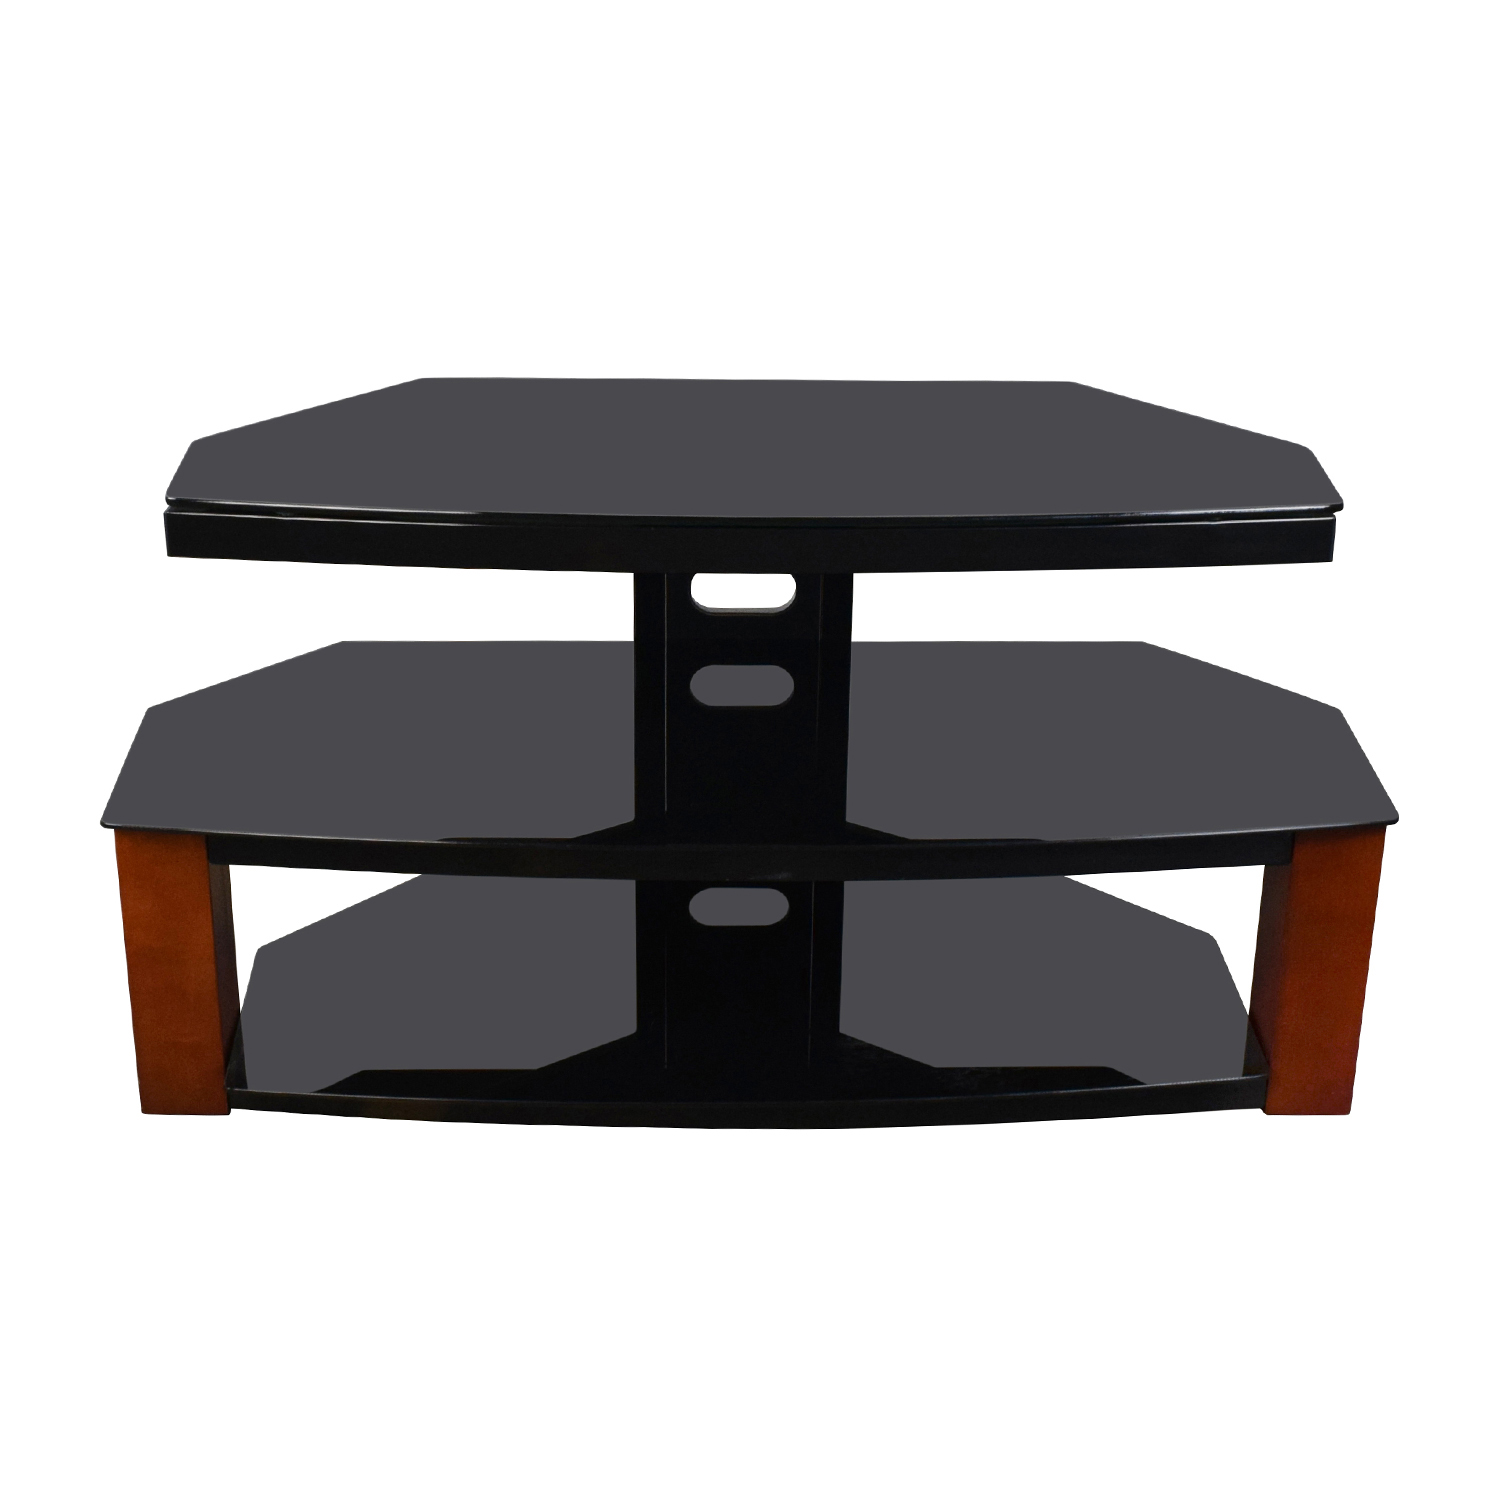 Black & Brown TV Stand Storage